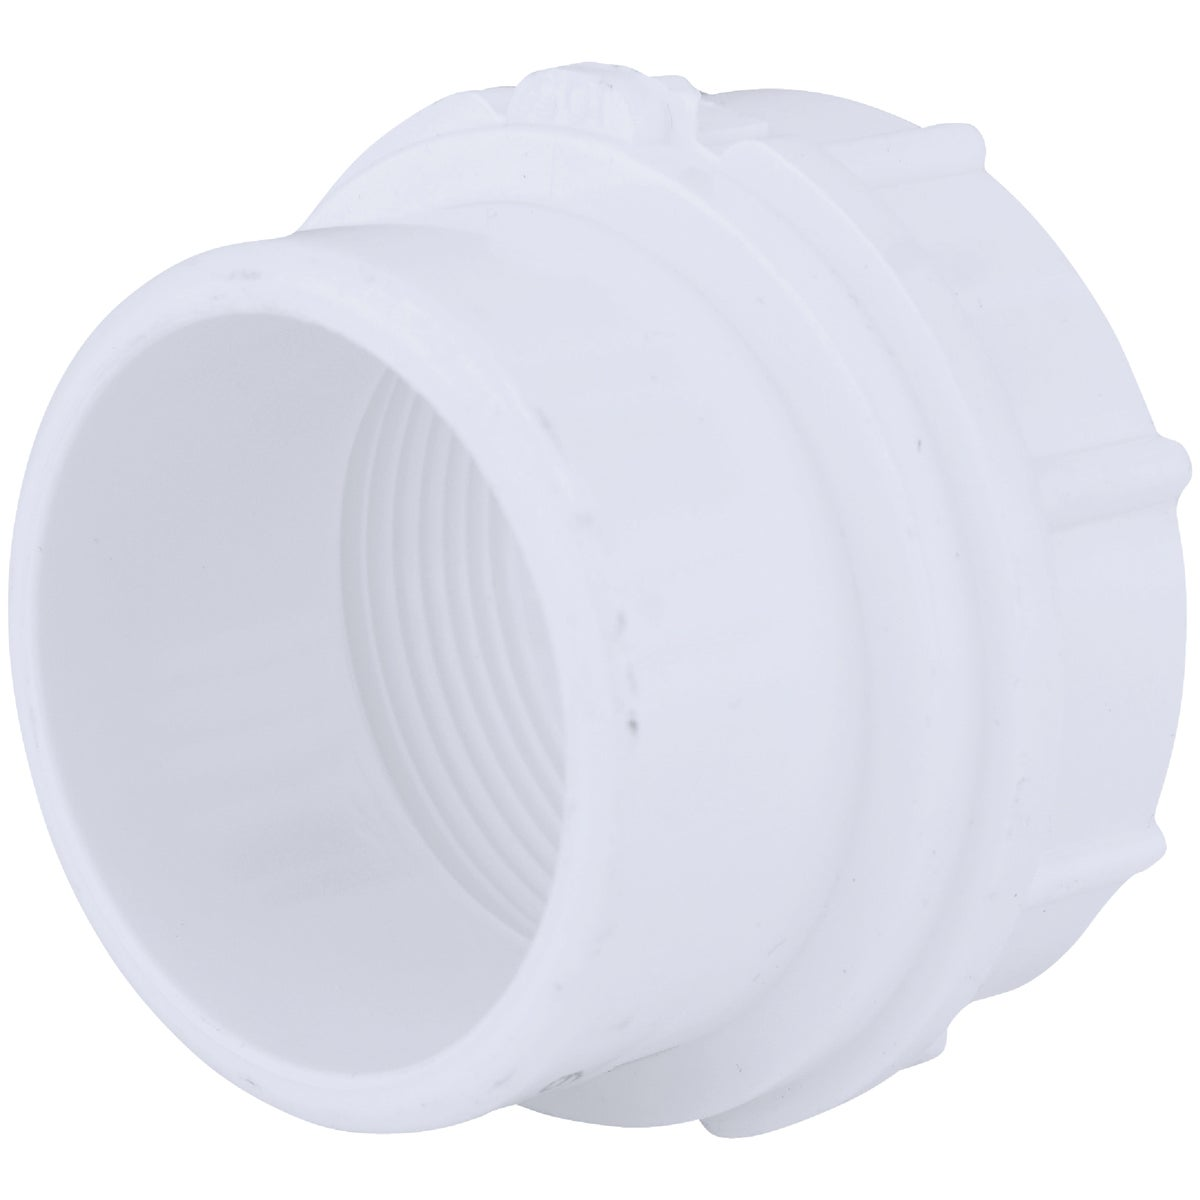 "1-1/2"" CLEANOUT FITTING - 71614 by Genova Inc  Pvc Dwv"